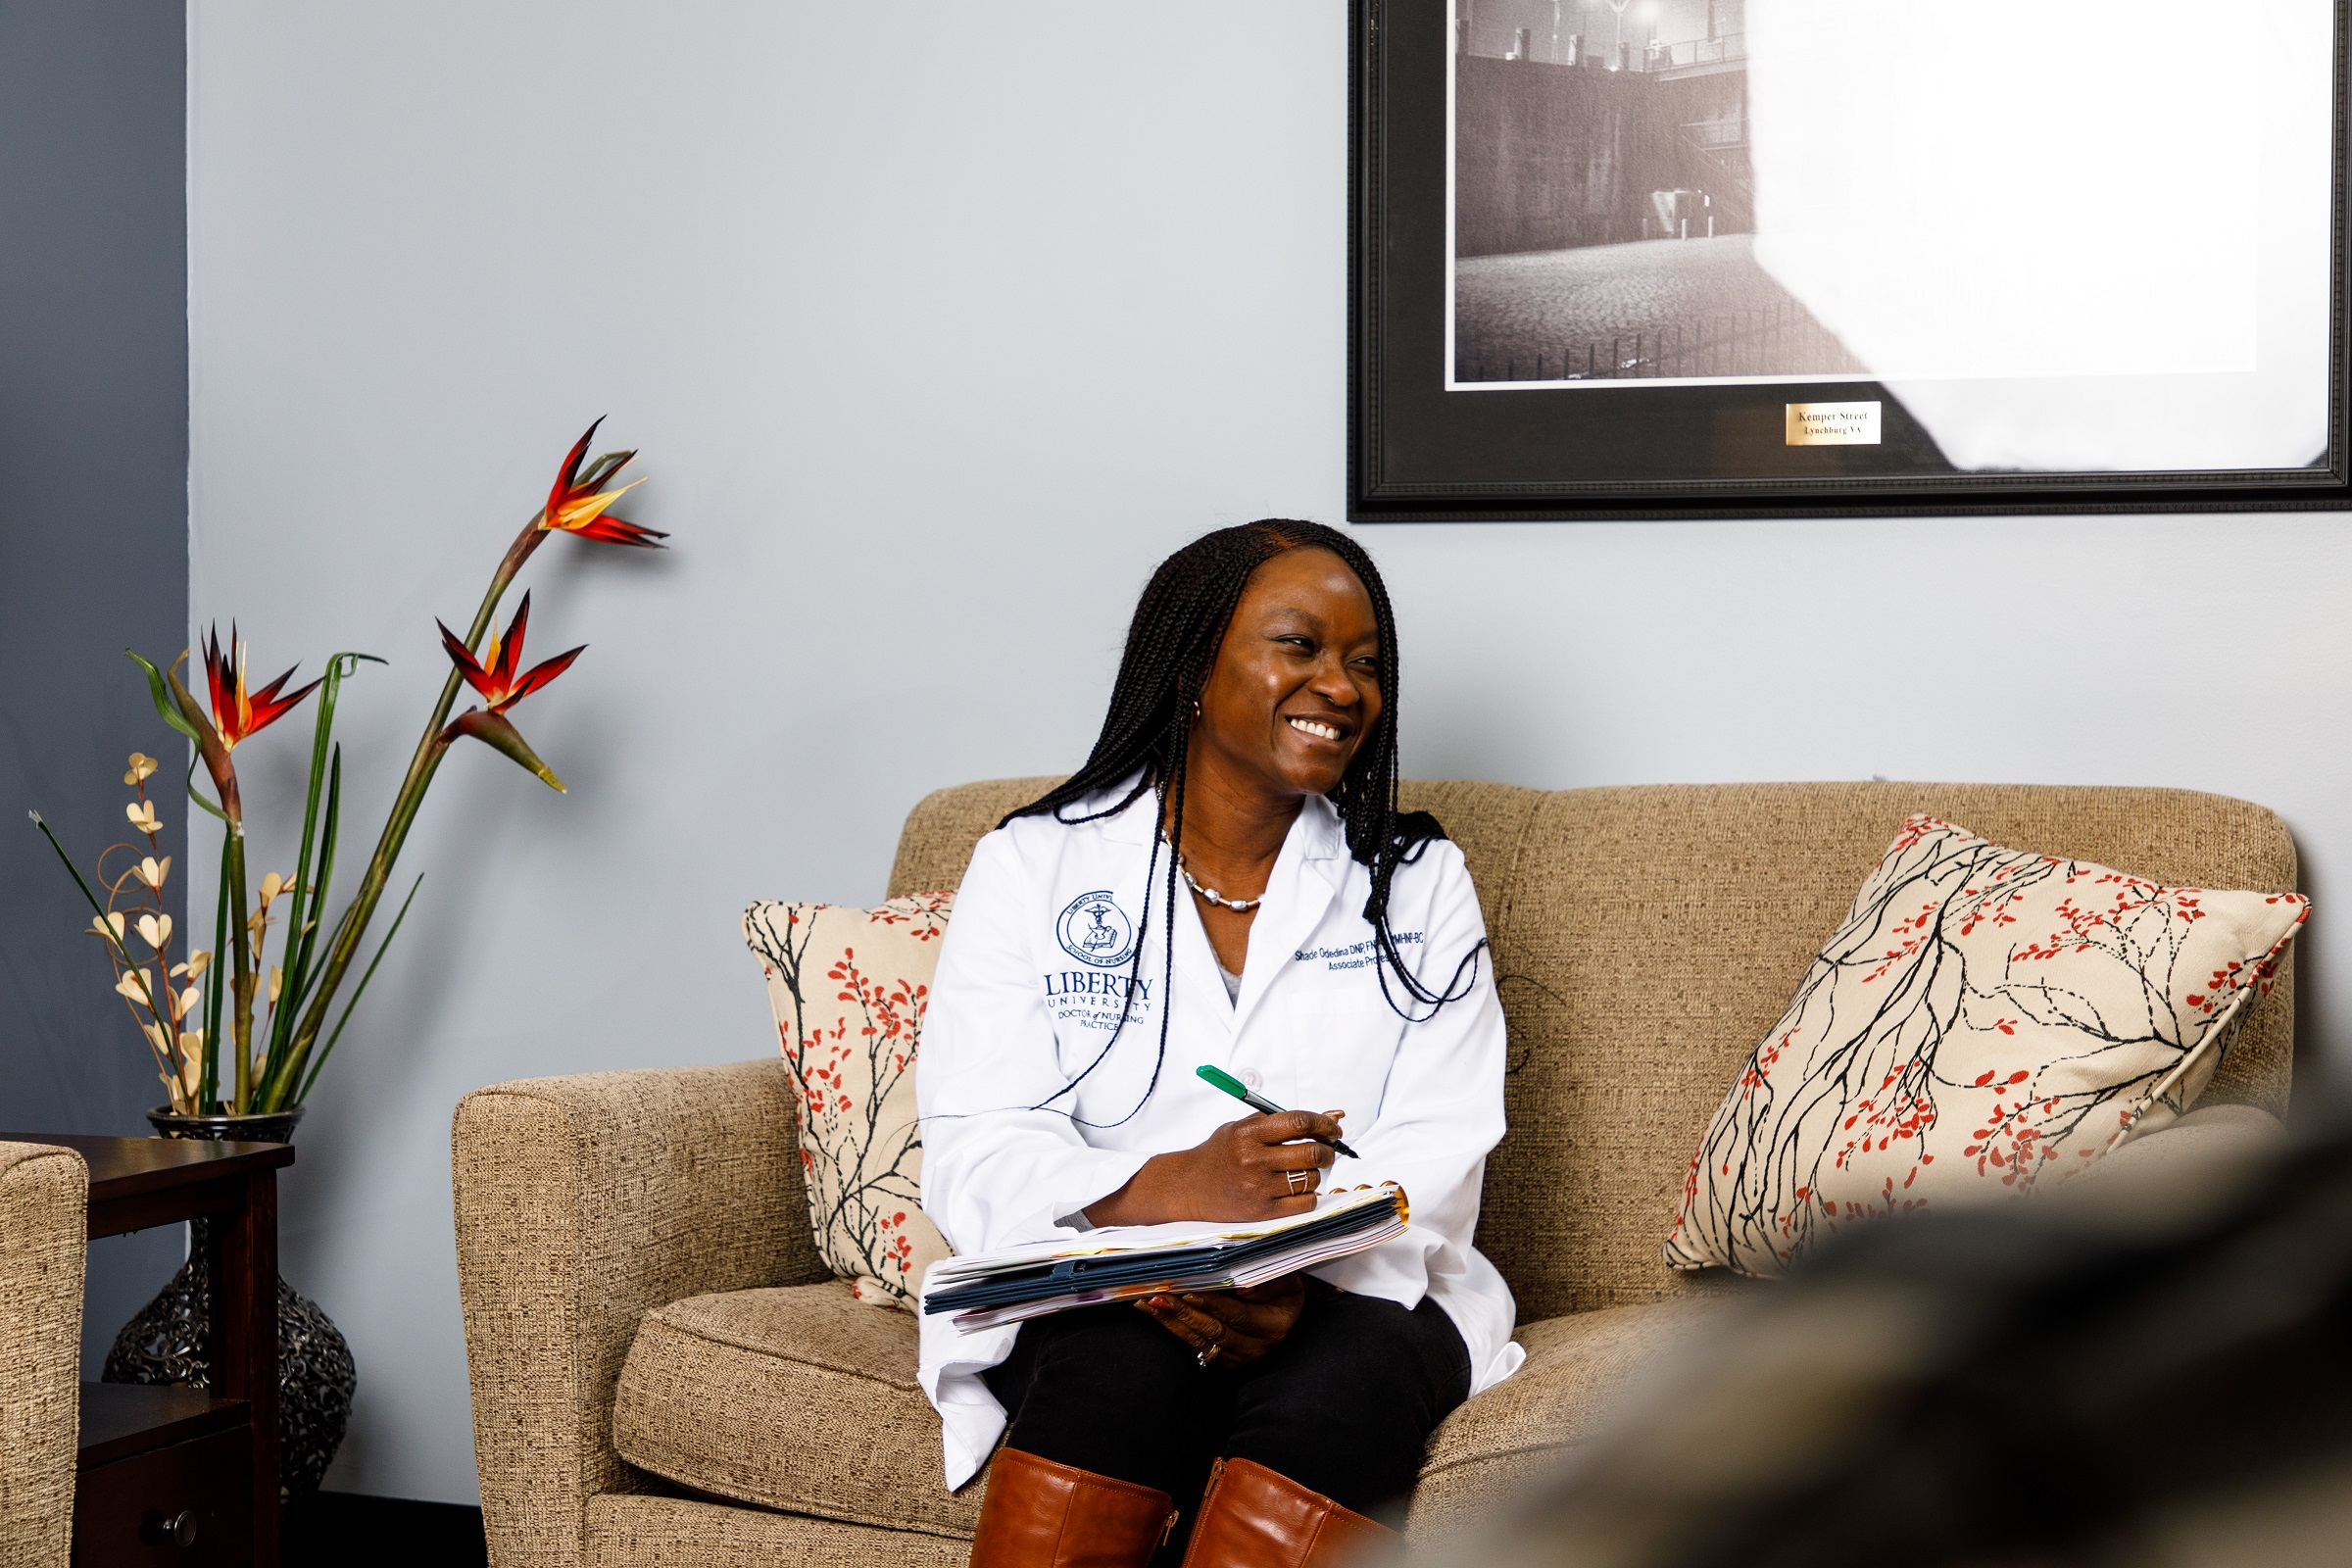 Female Nurse Practitioner in a Counseling Setting